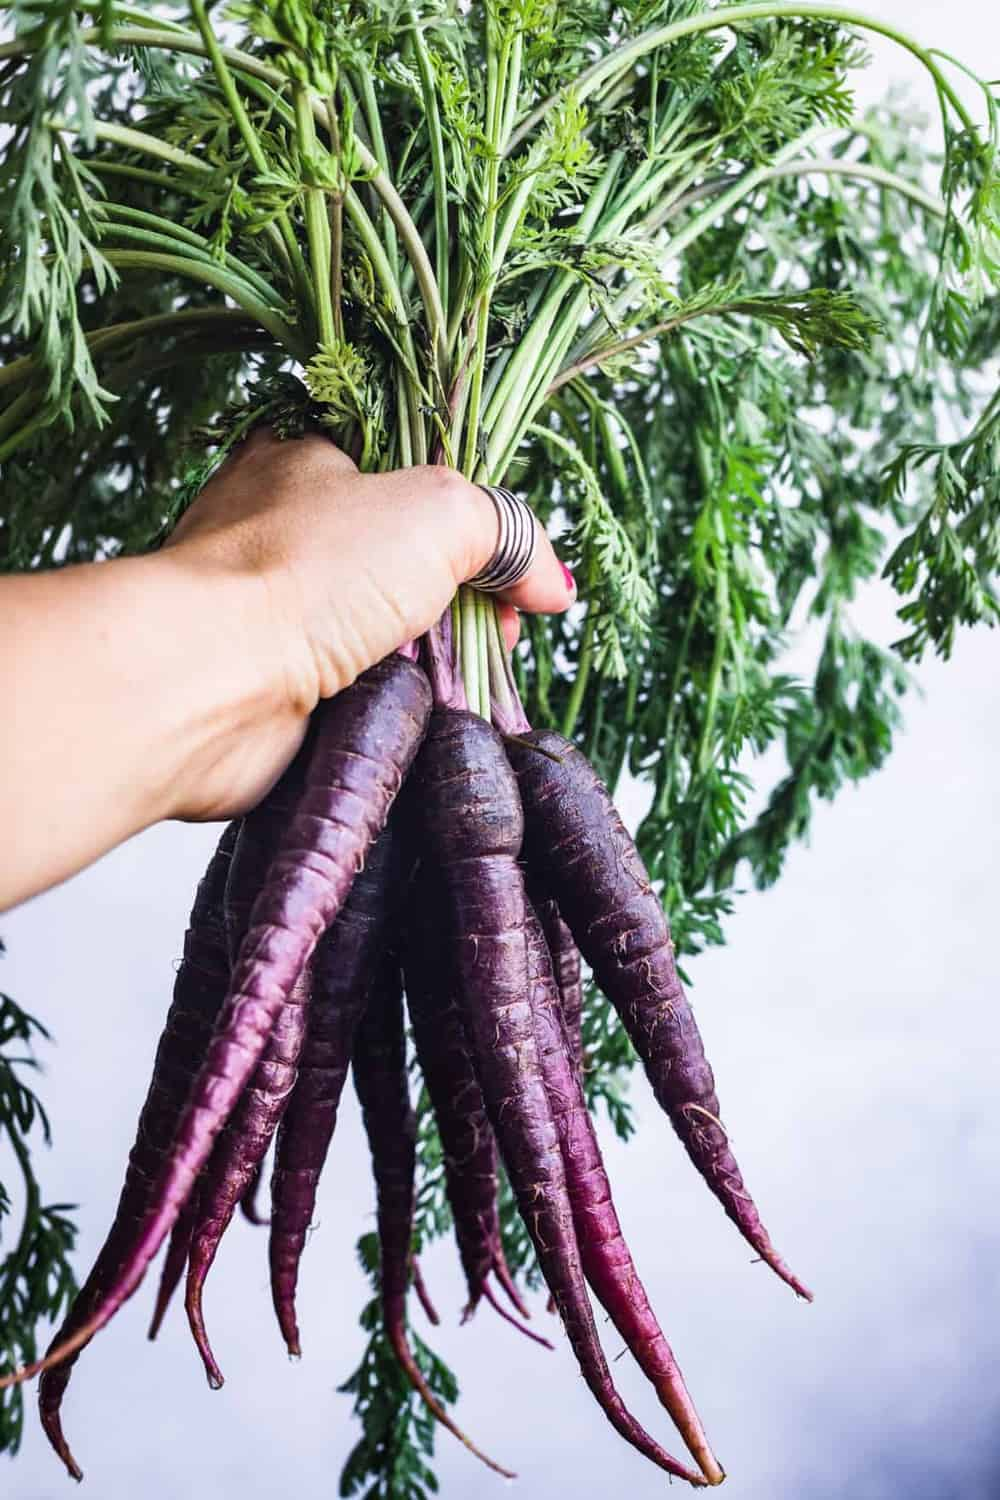 Holding purple dragon carrots, on a blue/white background.